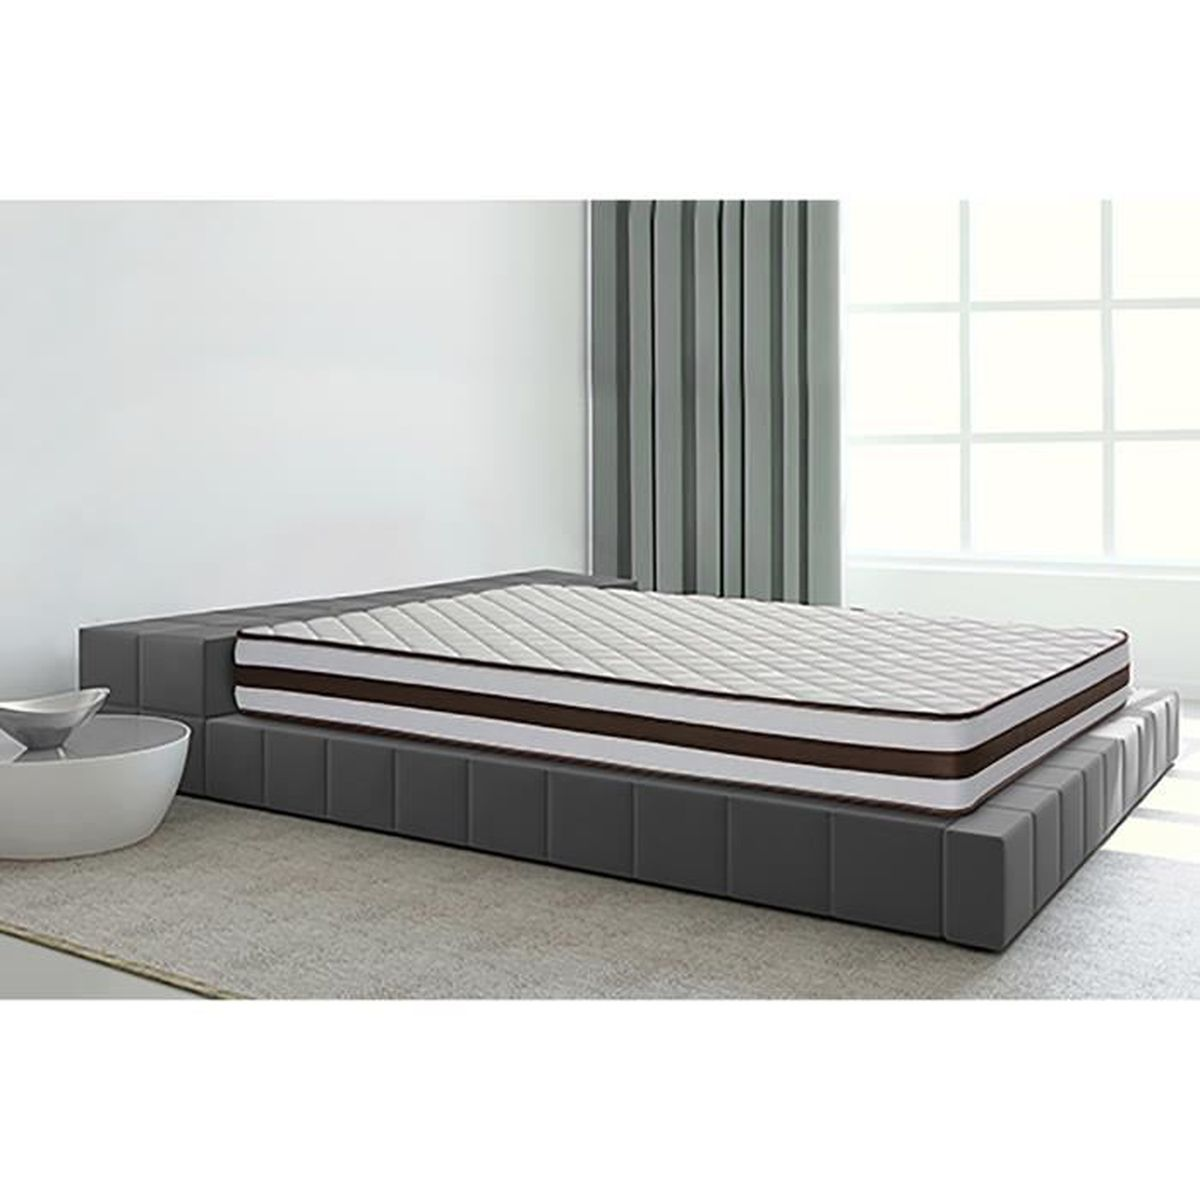 matelas visco grafeno 22cm 2cm visco 100x190cm achat vente matelas soldes d s le 10. Black Bedroom Furniture Sets. Home Design Ideas